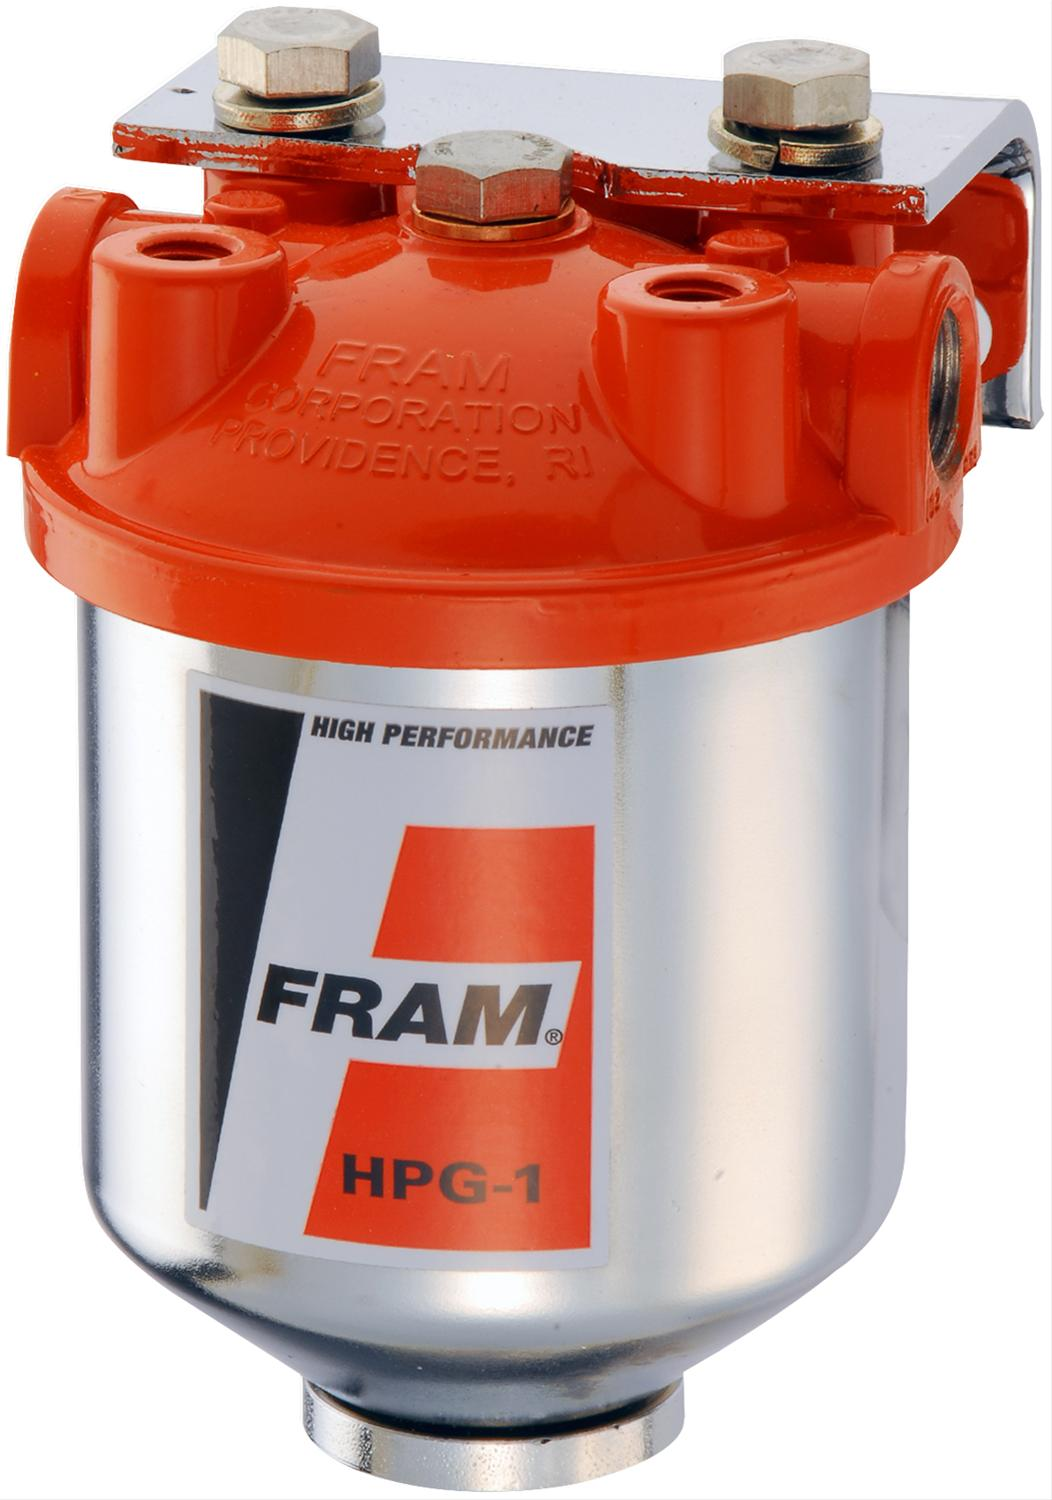 Fram Fuel Filters Hpg1 Free Shipping On Orders Over 99 At Summit Subaru In Tank Racing